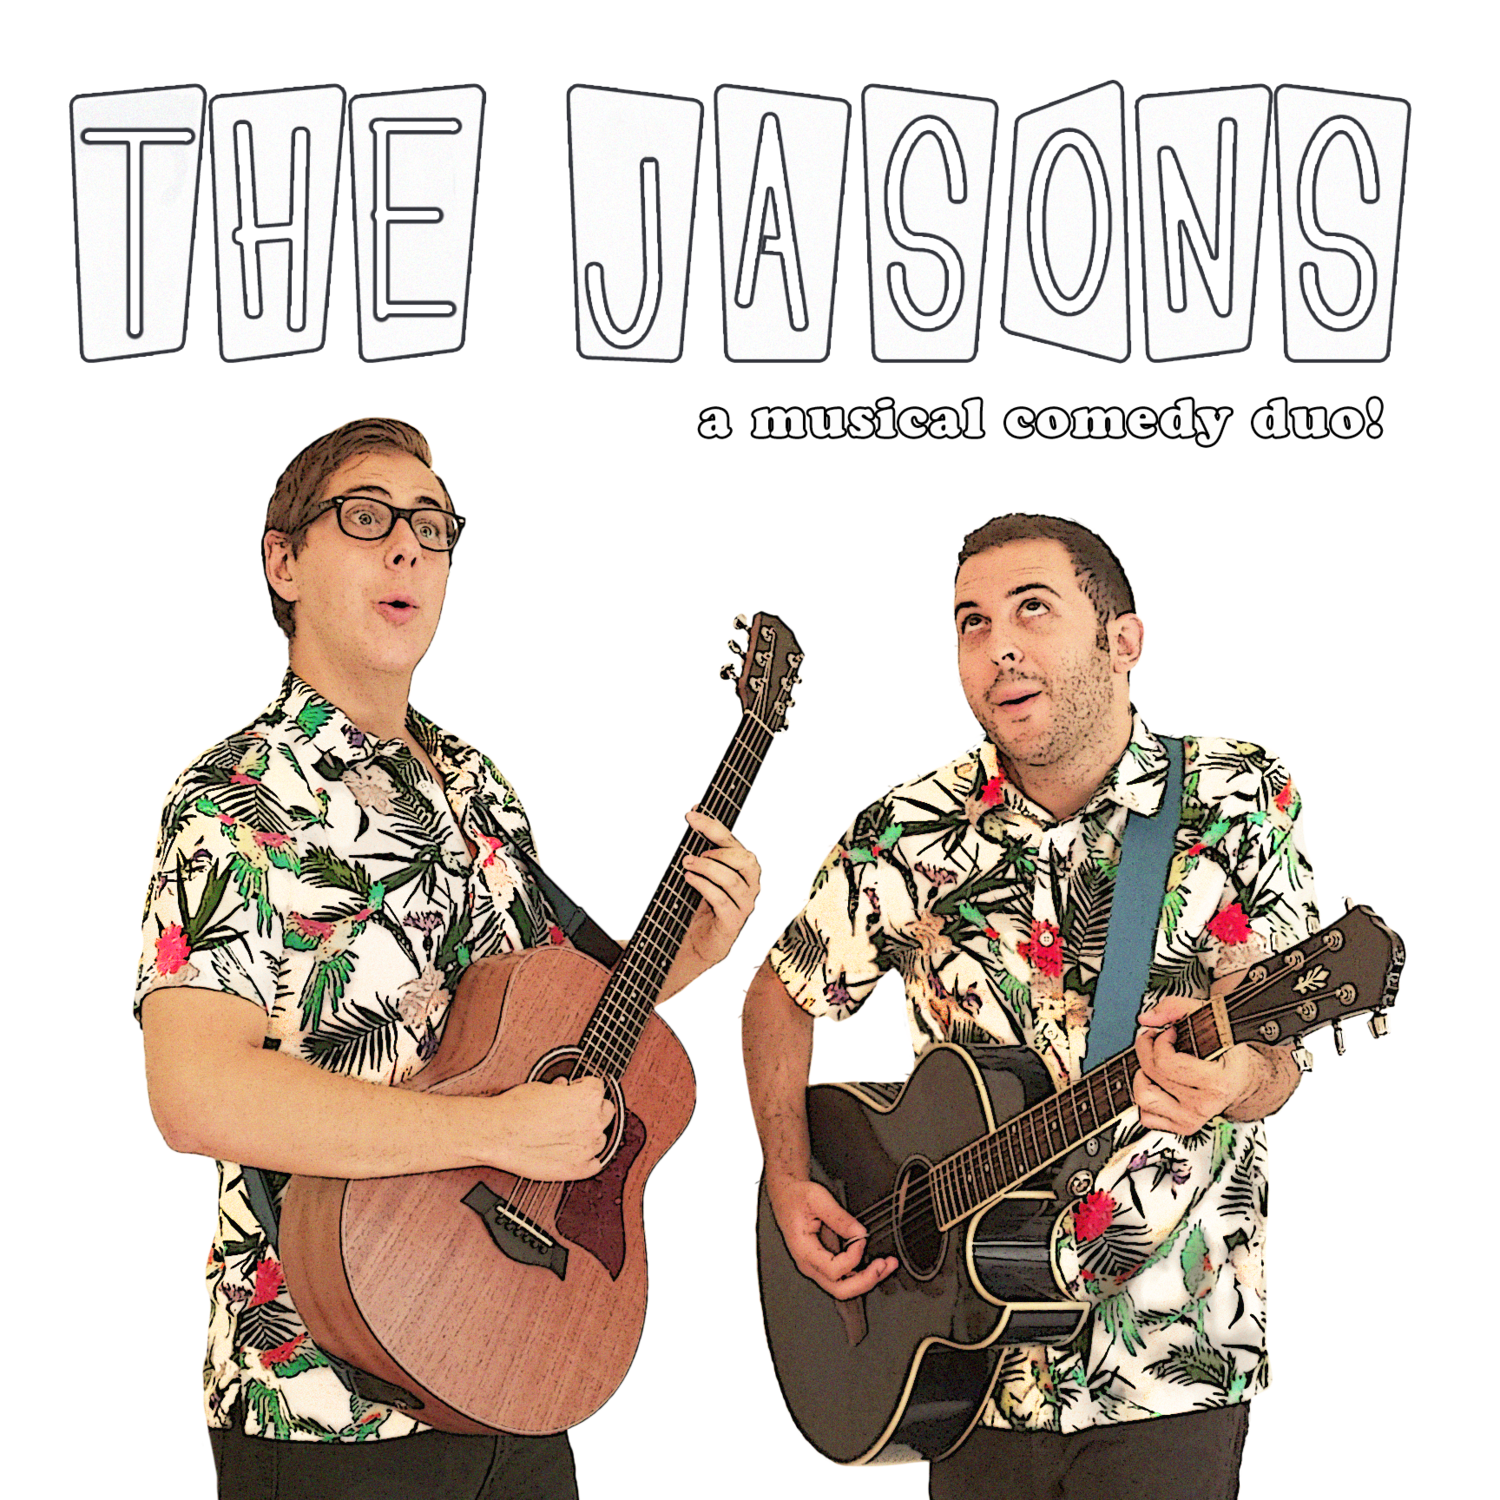 The Jasons Comedy - LA Musical Comedy Duo